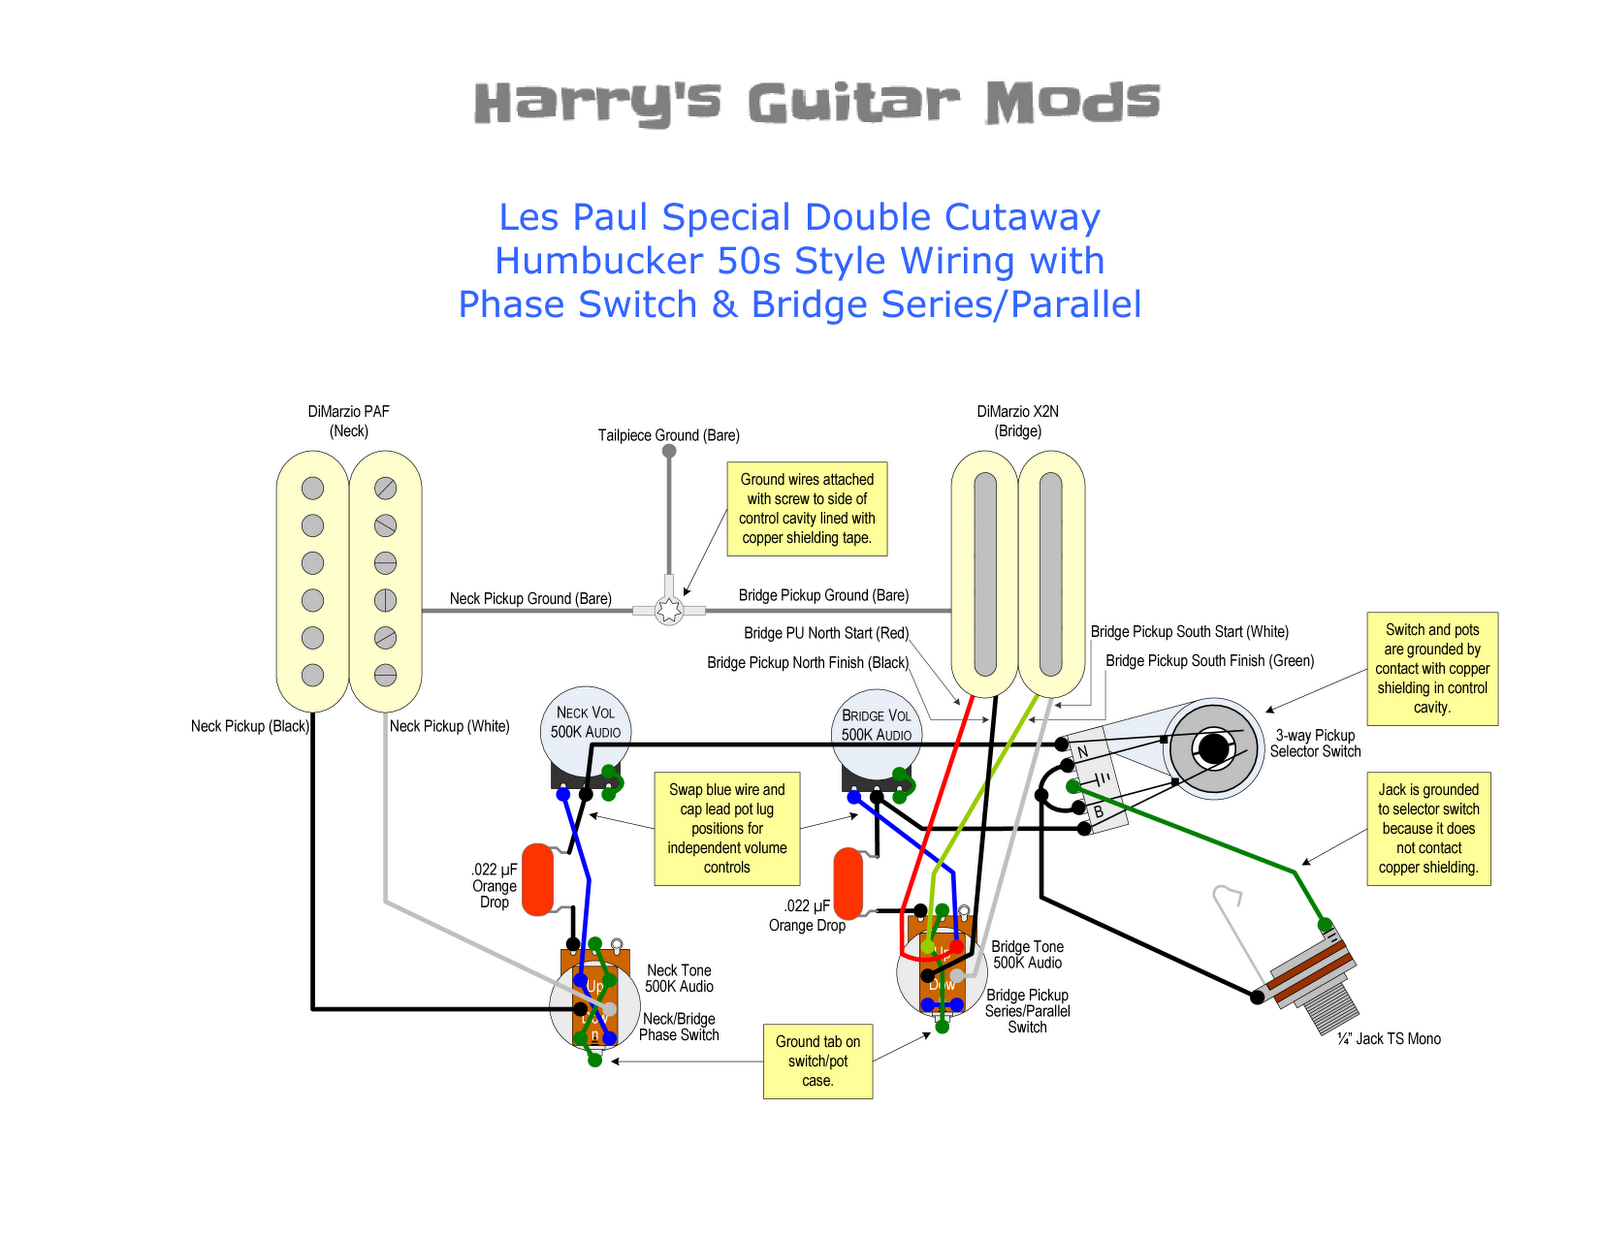 LPS+Wiring+Diagram harry's guitar mods controls wiring upgrade Treble Bleed Wiring with SG at suagrazia.org